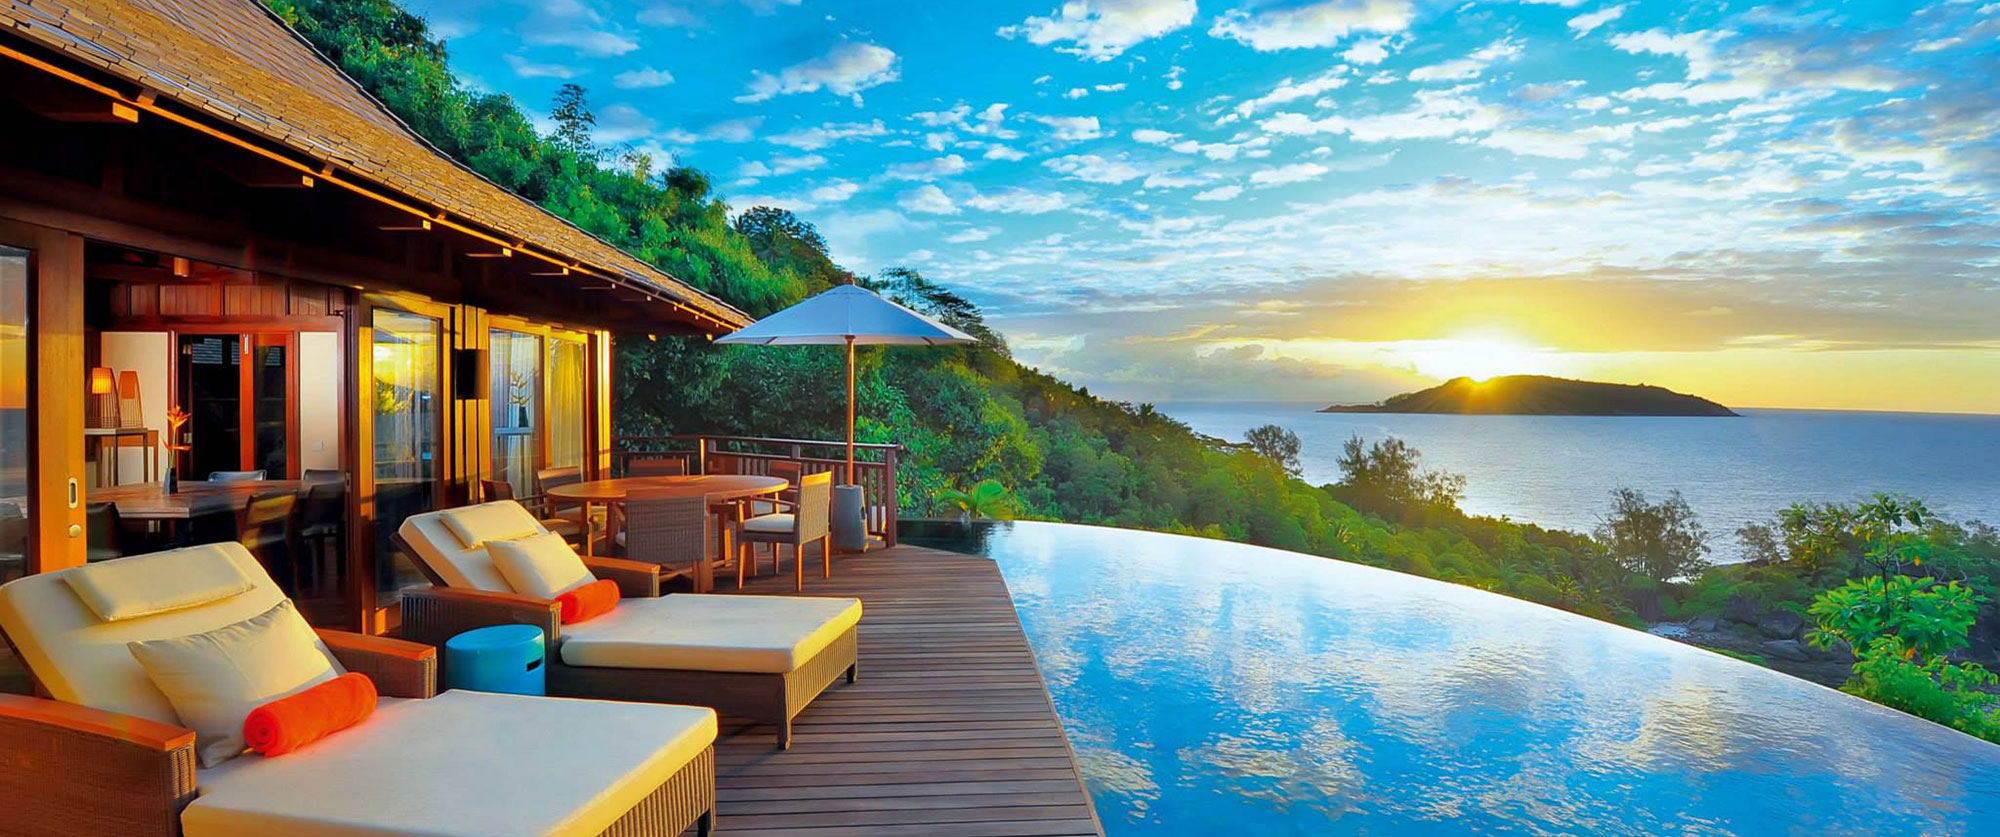 Kenya safari packages seychelles travel packages best seychelles resort seychelles travel expert